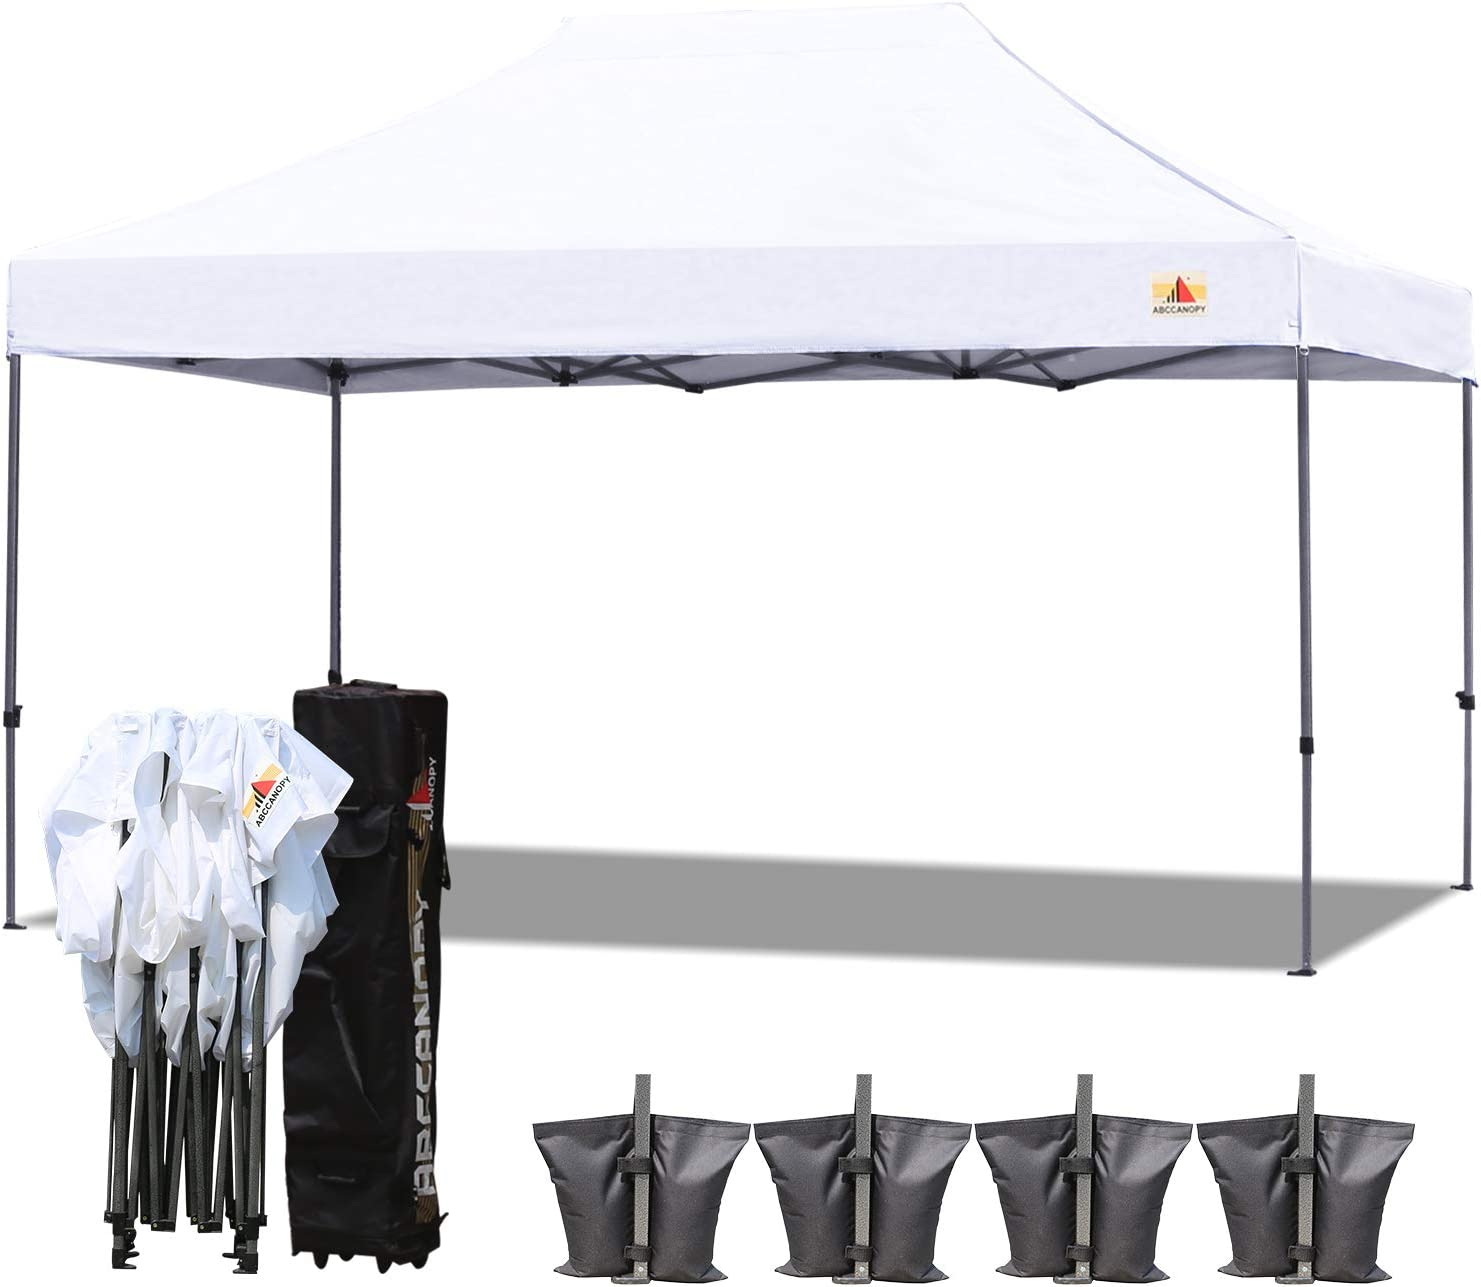 ABCCANOPY 23 Colors 10×15 Pop up Tent Instant Canopy Commercial Outdoor Canopy with Wheeled Carry Bag Bonus 4 Weight Bags White